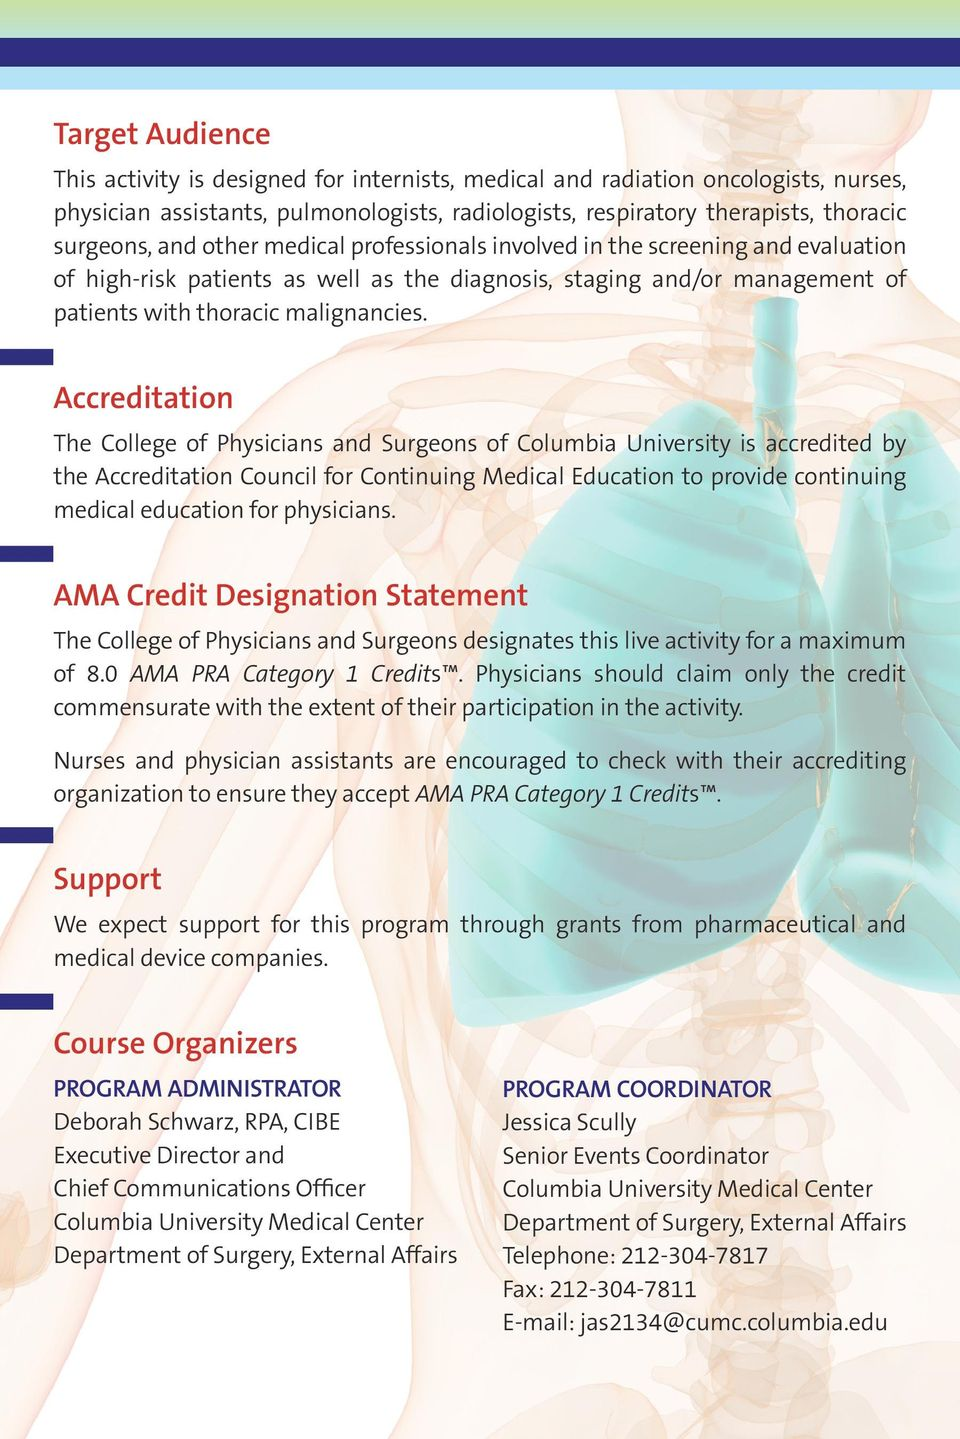 Accreditation The College of Physicians and Surgeons of Columbia University is accredited by the Accreditation Council for Continuing Medical Education to provide continuing medical education for